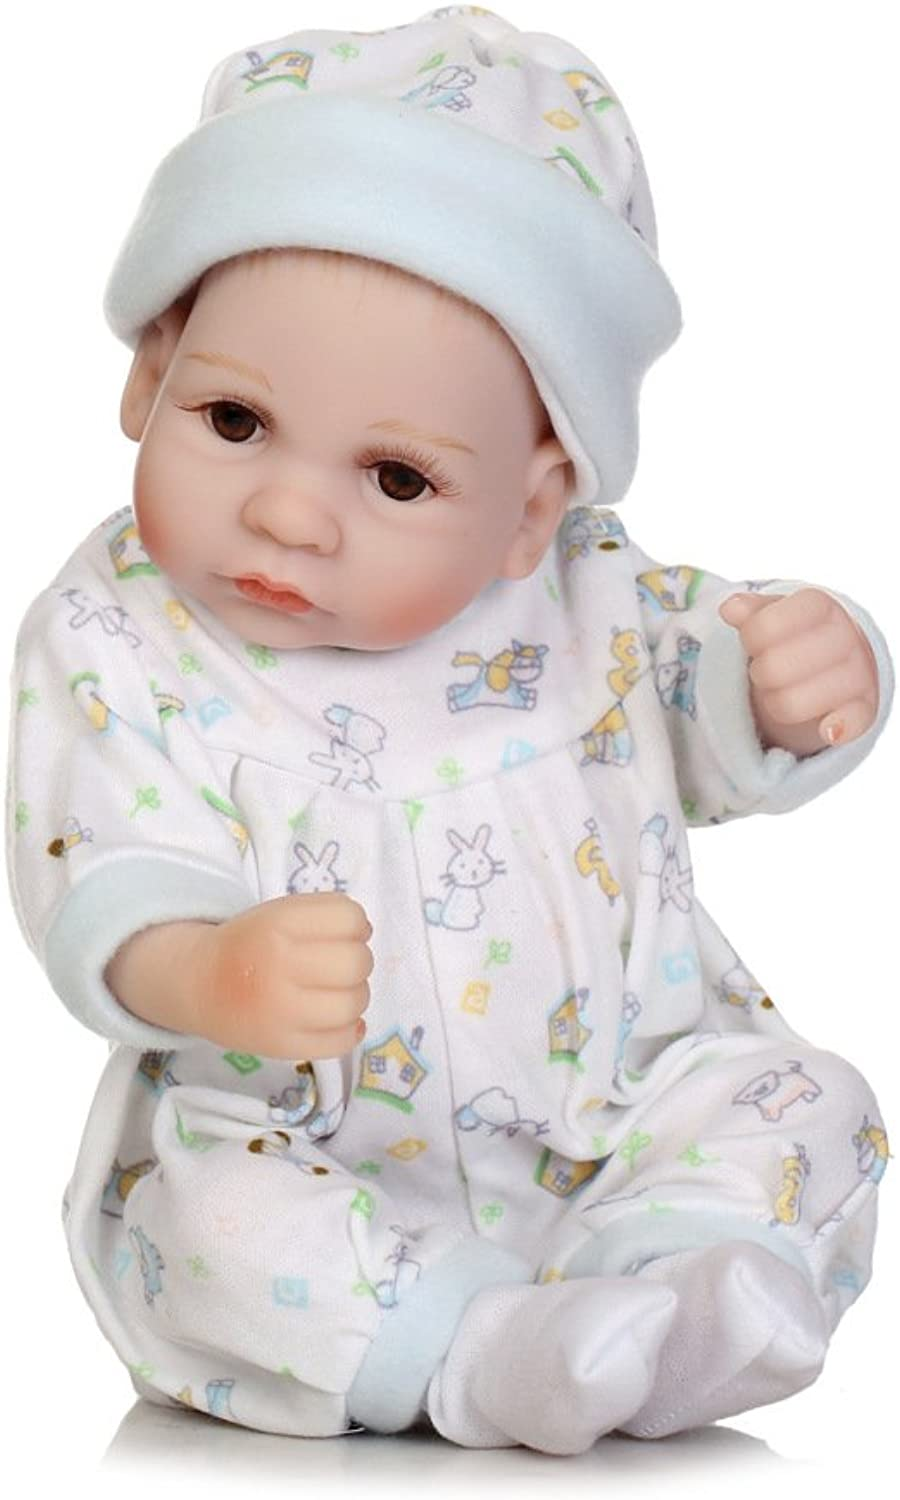 ZBYY Simulation Silicone Baby Real Vinyl 10 Inch 27CM Toy Sleeping Alive Kids Toy Boy And Girl Xmas Gift